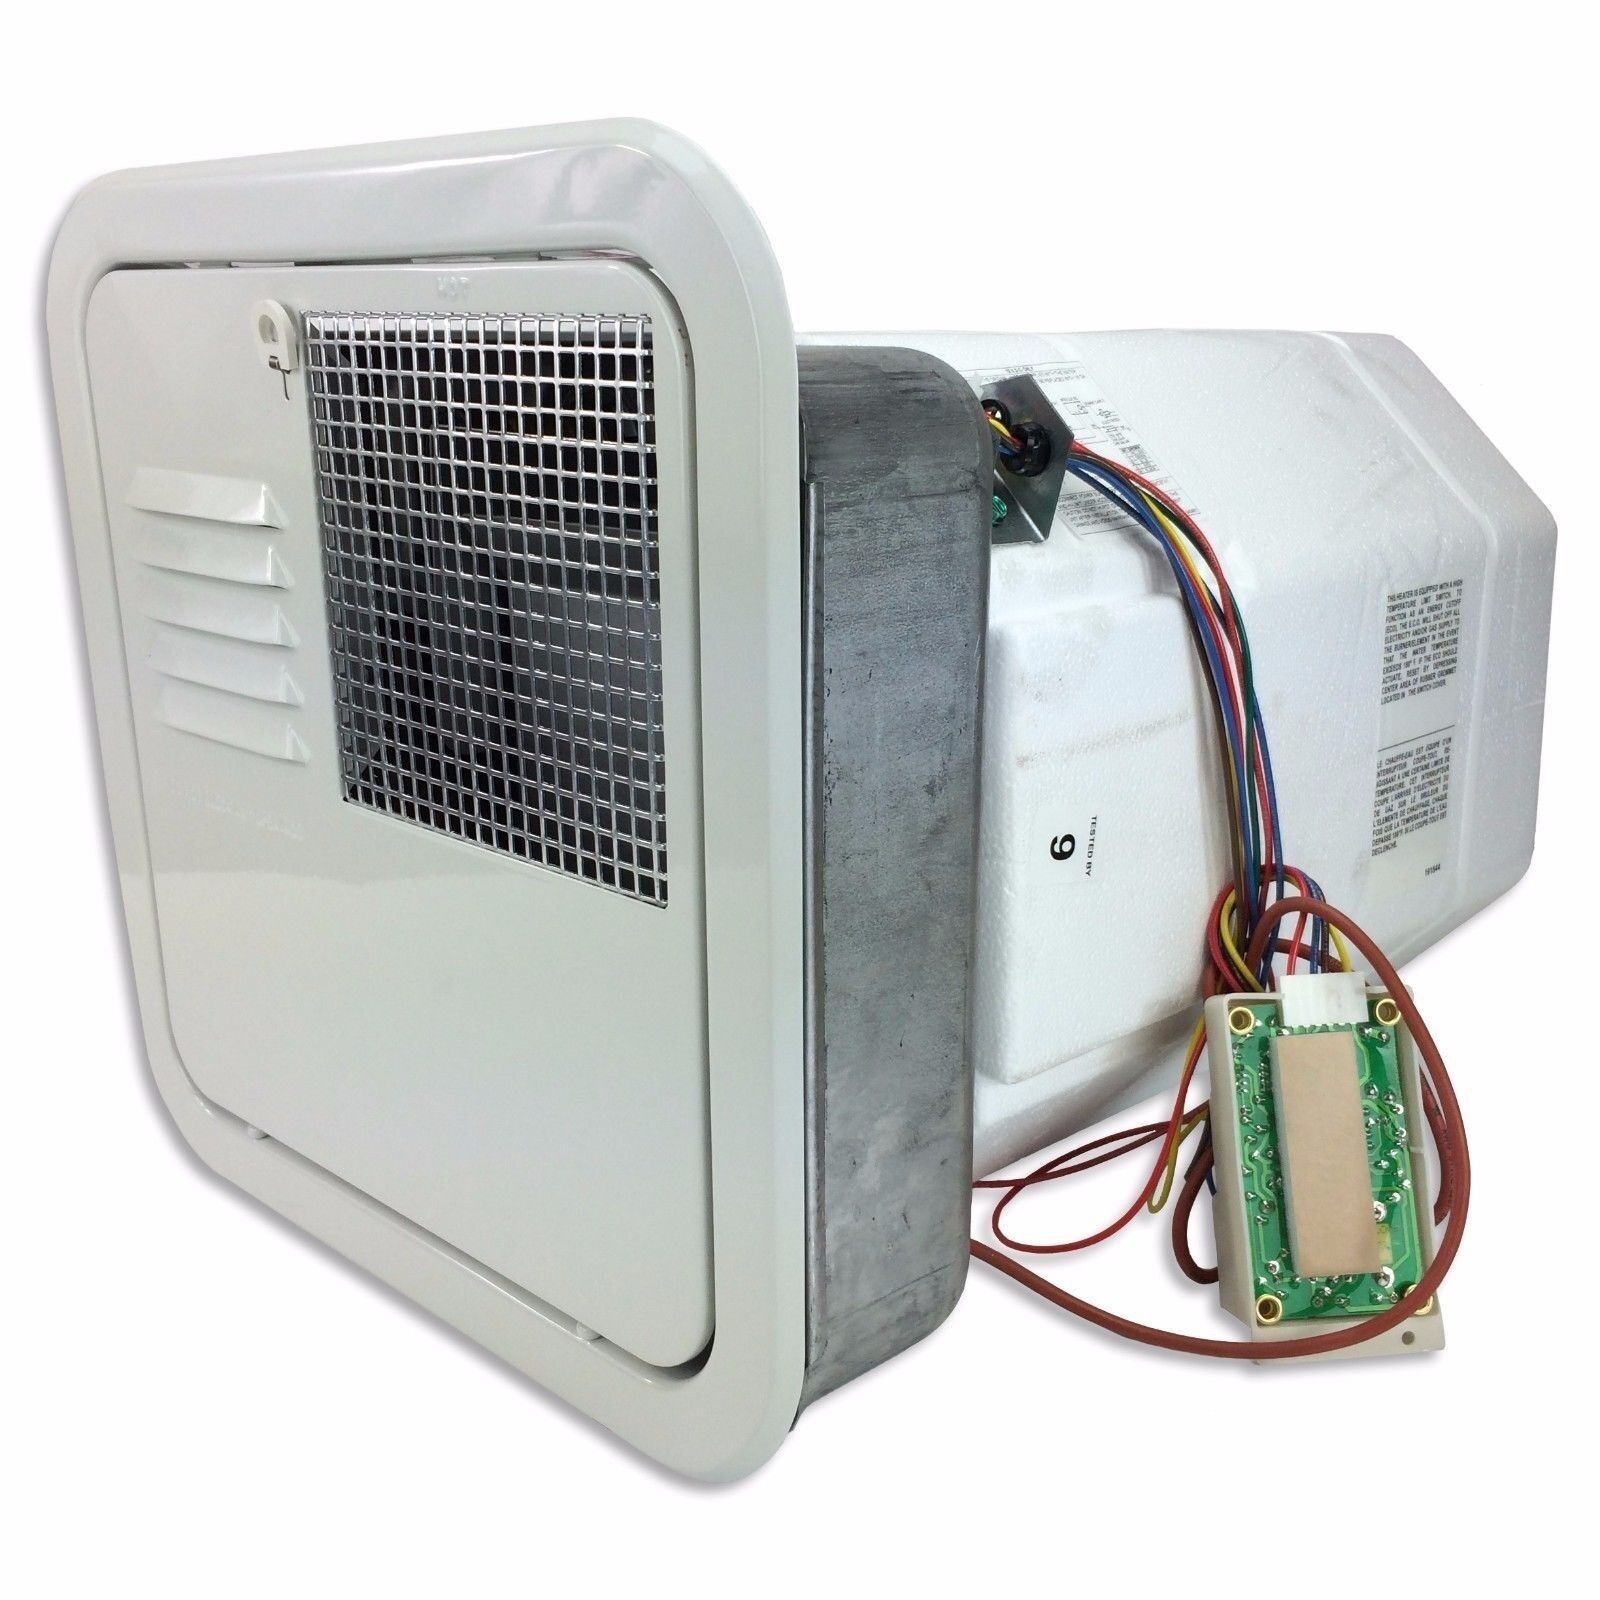 Suburban Sw6d Rv Water Heater Dsi Camper Trailer Lp Gas W White Door 93865 Atwood Circuit Board 1 Of 1free Shipping